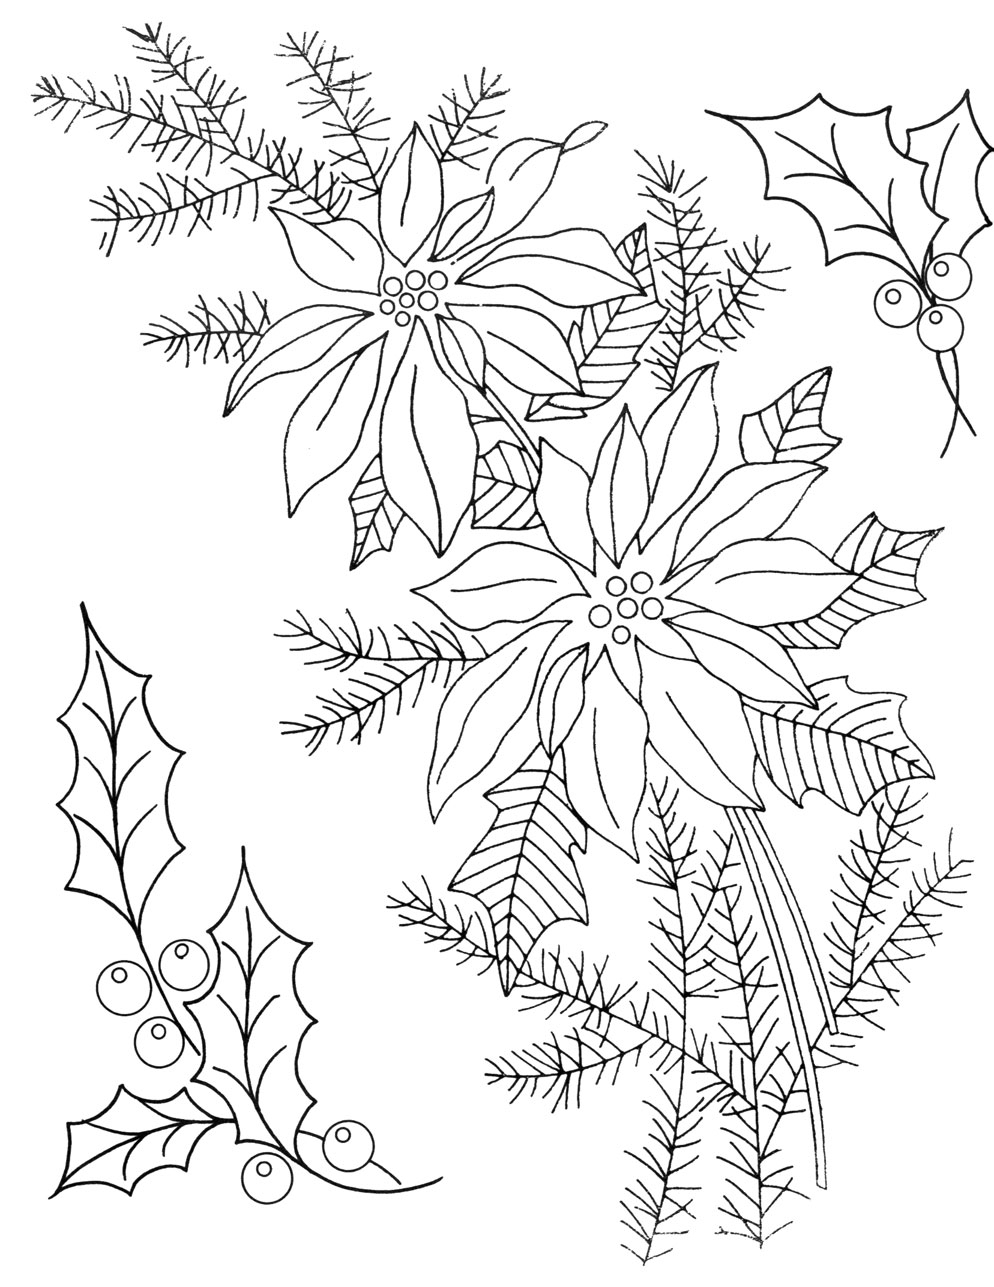 Free Christmas Embroidery Patterns More Vintage Christmas Embroidery Transfers Q Is For Quilter